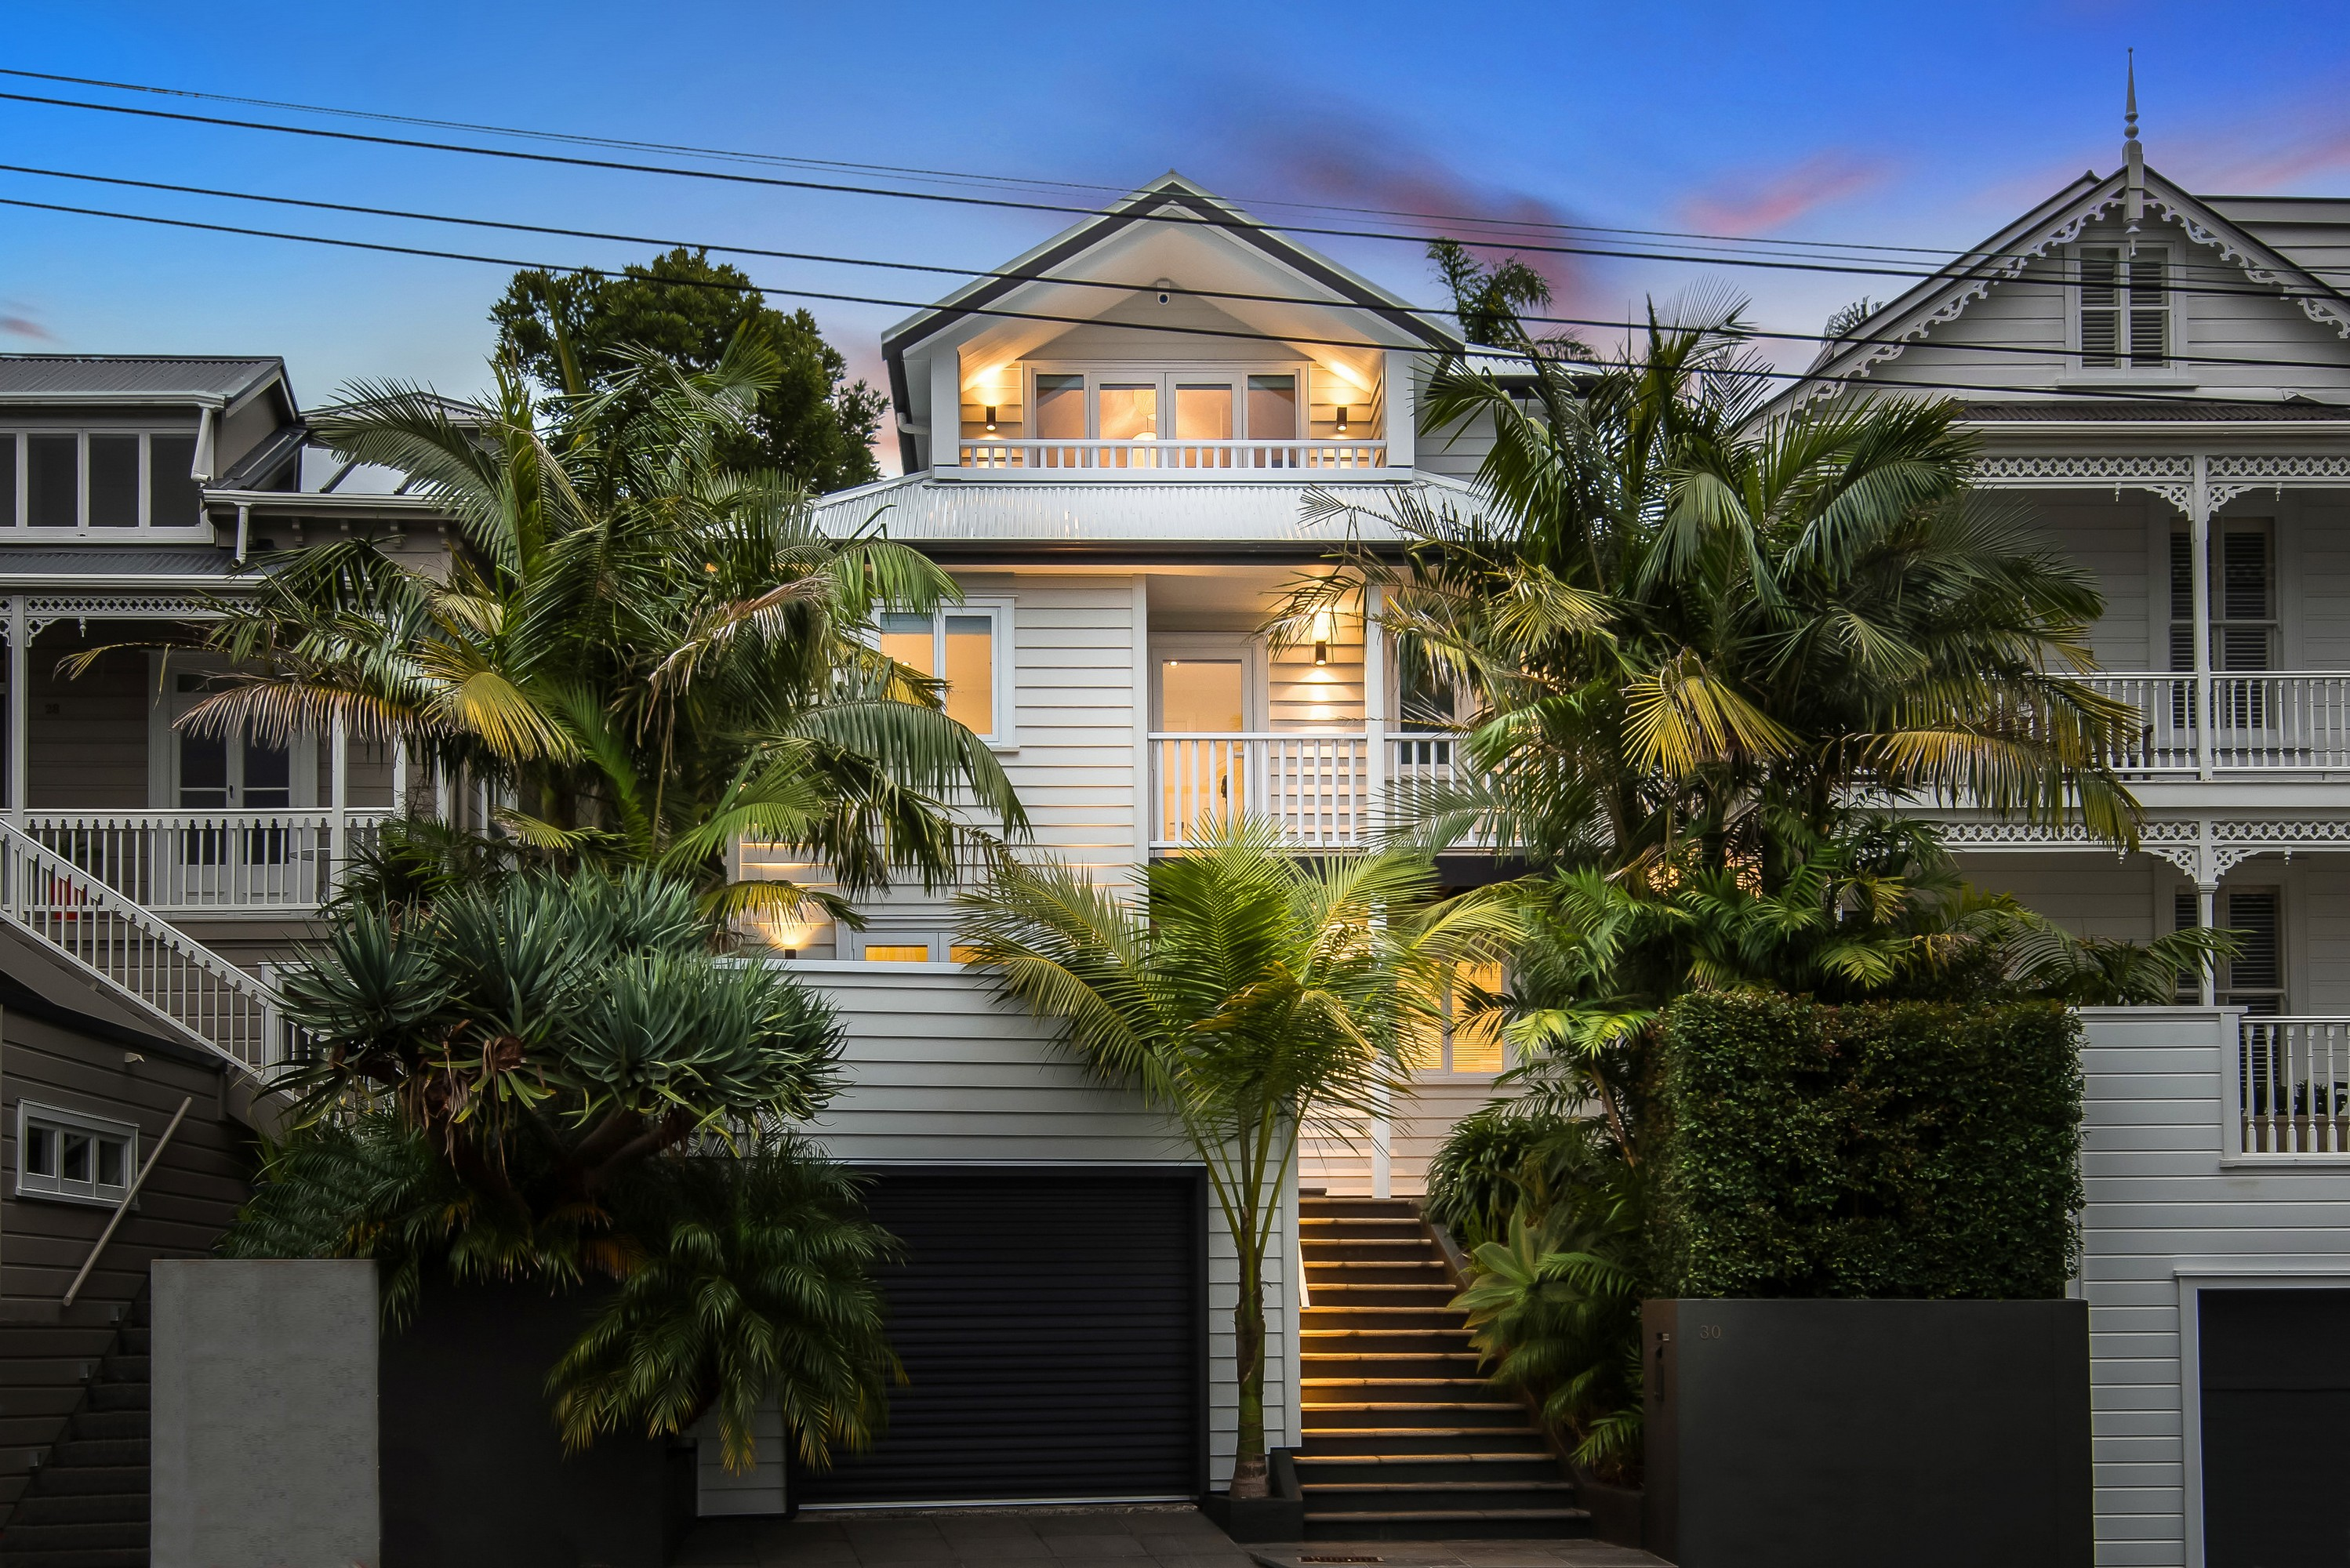 Single Family Home for Sale at 30 Collingwood Street 30 Collingwood Street Freemans Bay Auckland, Auckland, 1011 New Zealand